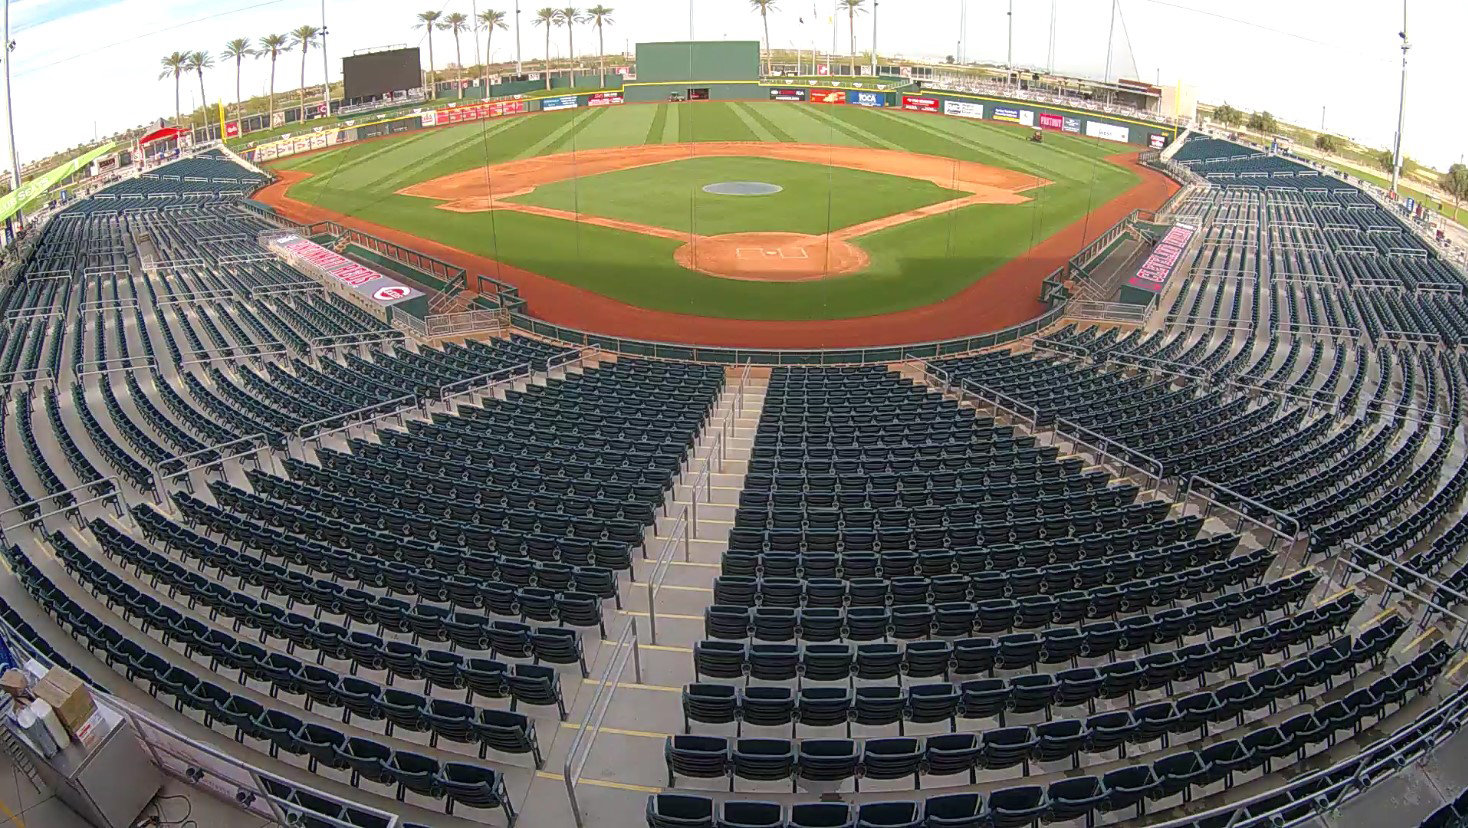 The view from the Goodyear Ballpark field camera the afternoon of Feb. 20.